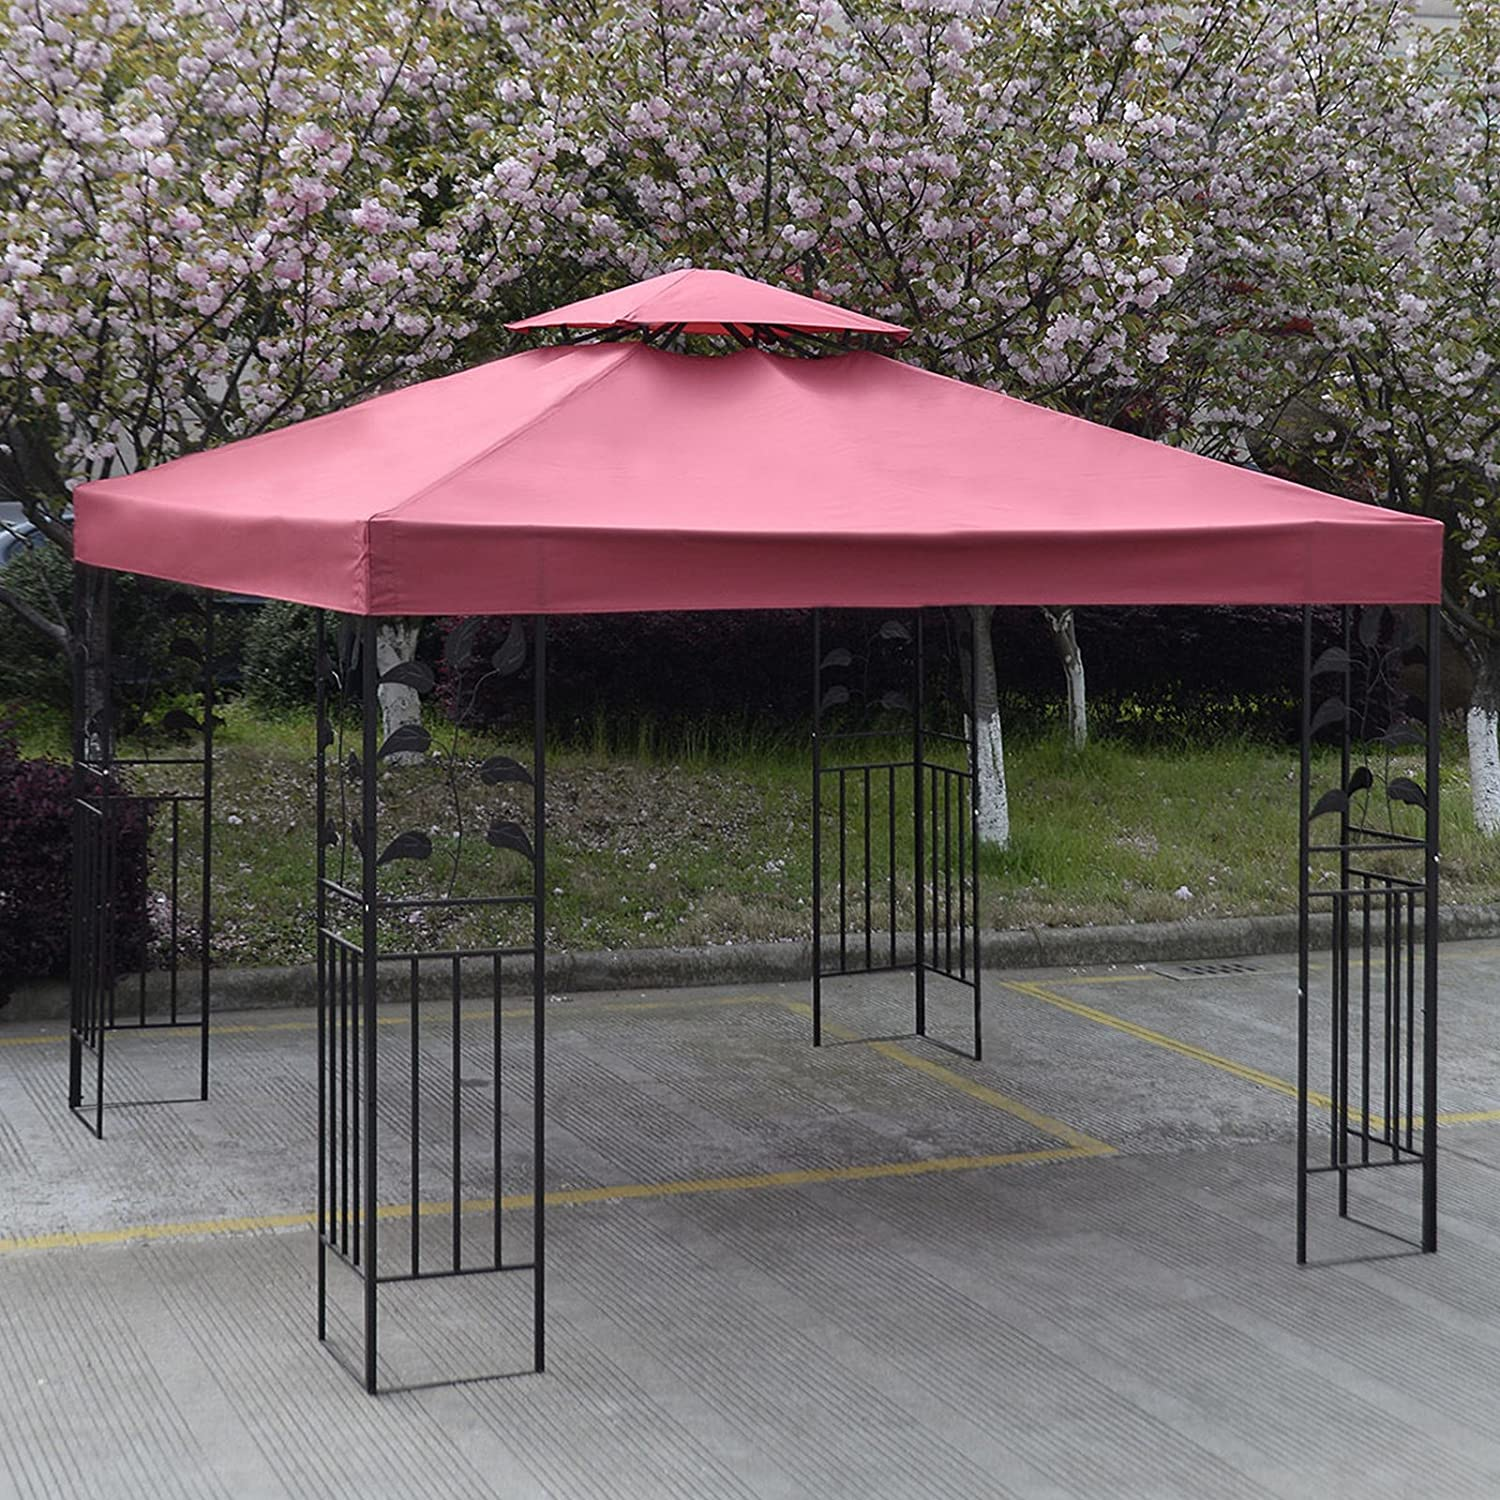 10' X 10' Gazebo Top Cover Patio Canopy Replacement 1-Tier or 2-Tier 3 Color Protection Against UV Rays From Sun Brand New (1 Tier Beige) SUNDRY